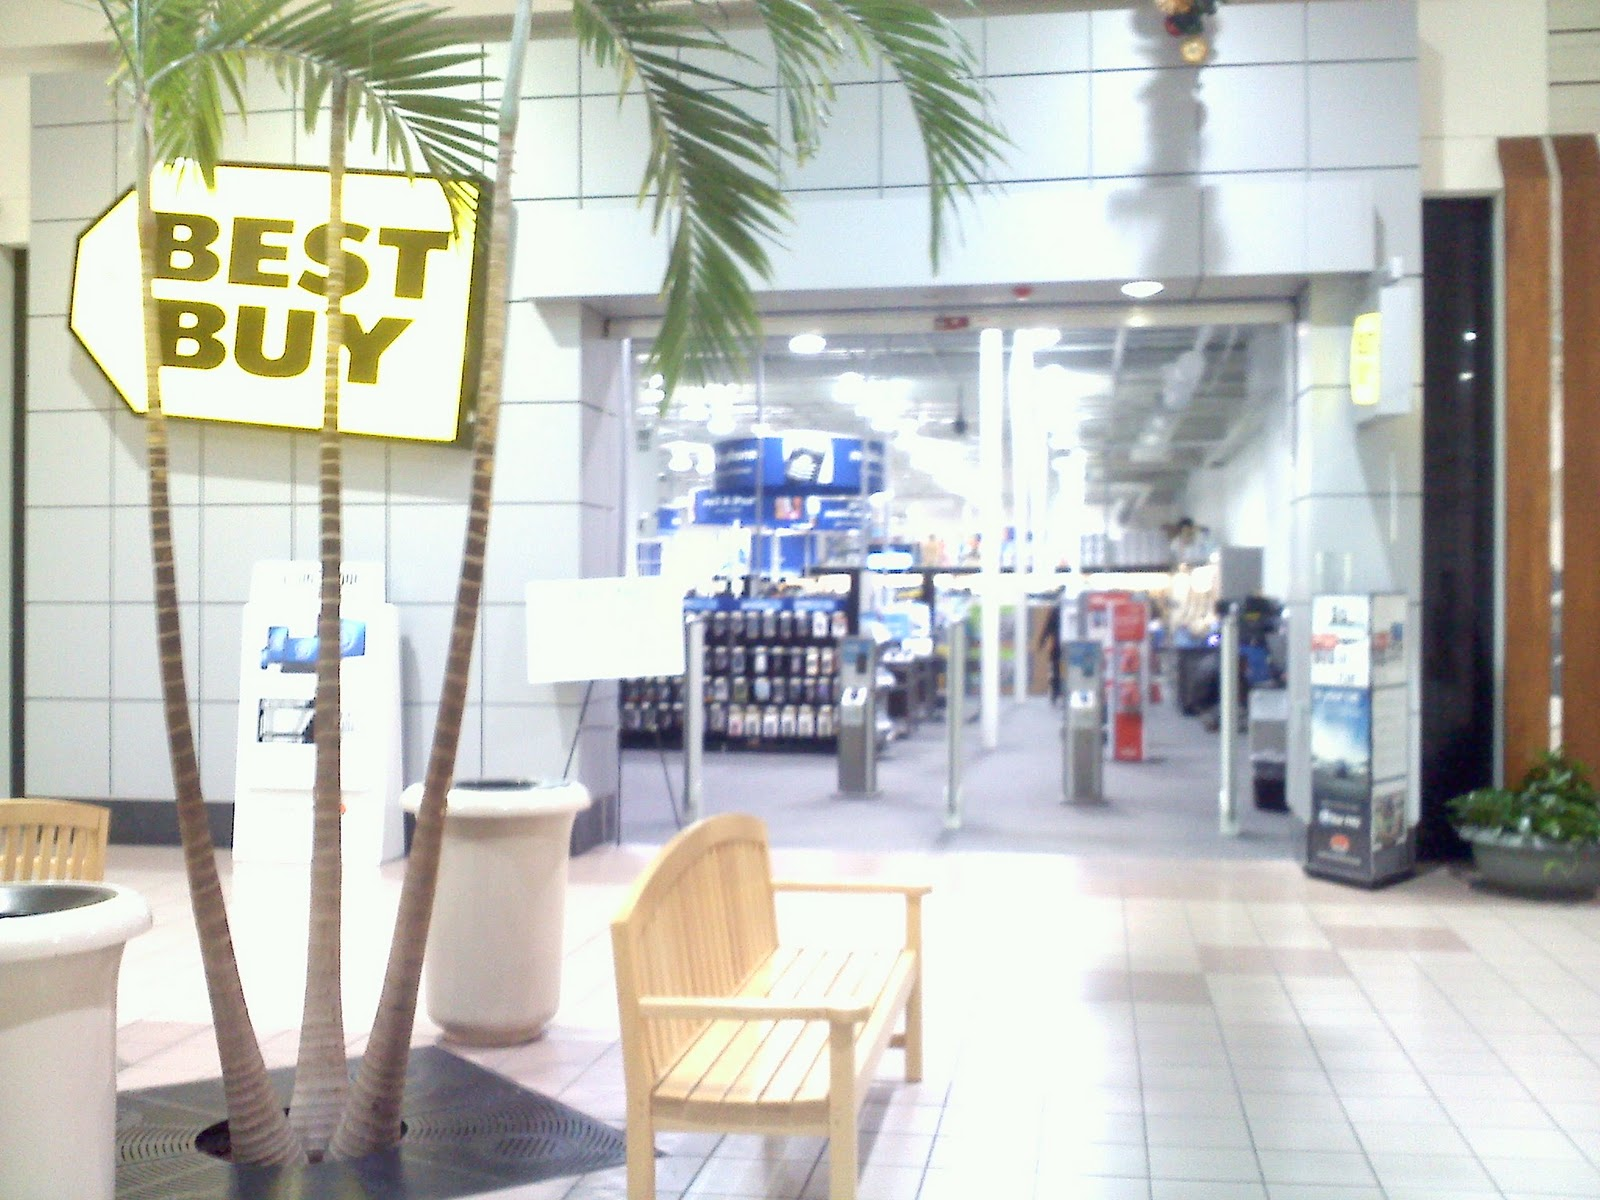 The best buy mall entrance looking towards the sears entrance a mall